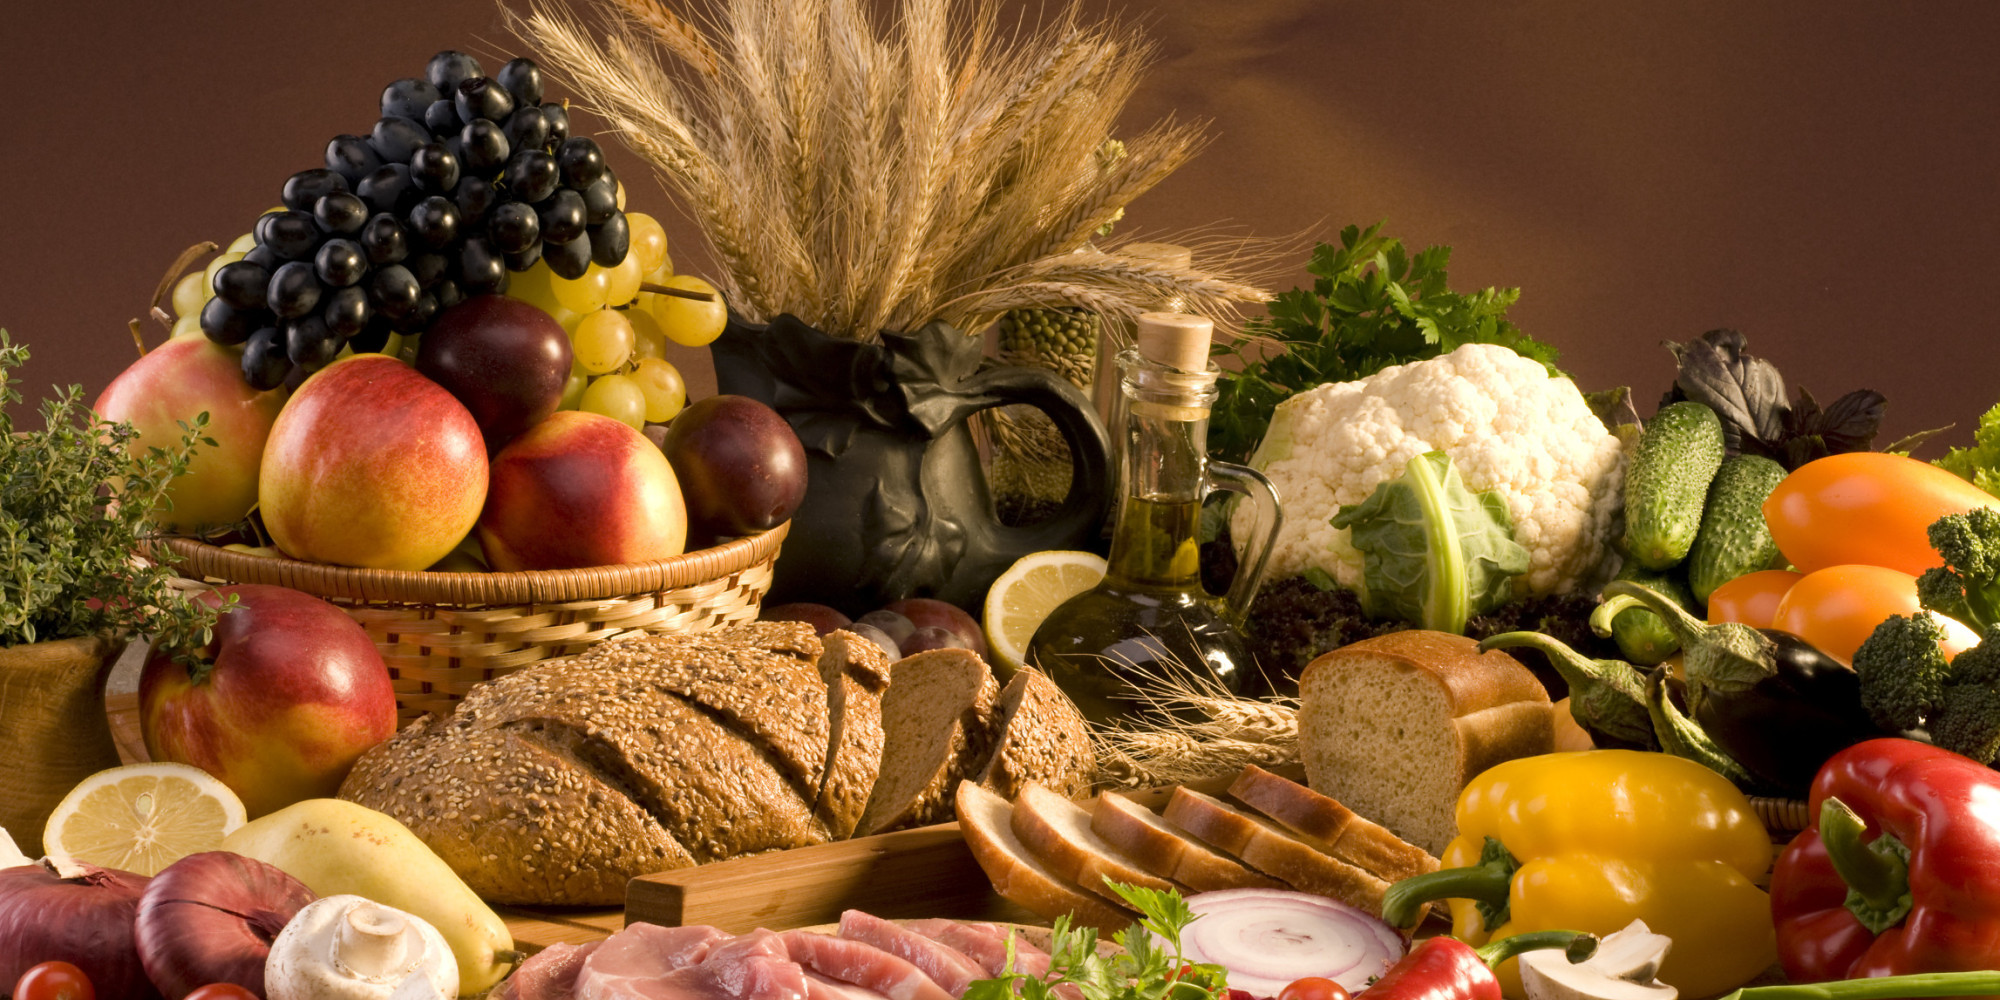 10 Reasons Why Taking in More Fiber is Good for You